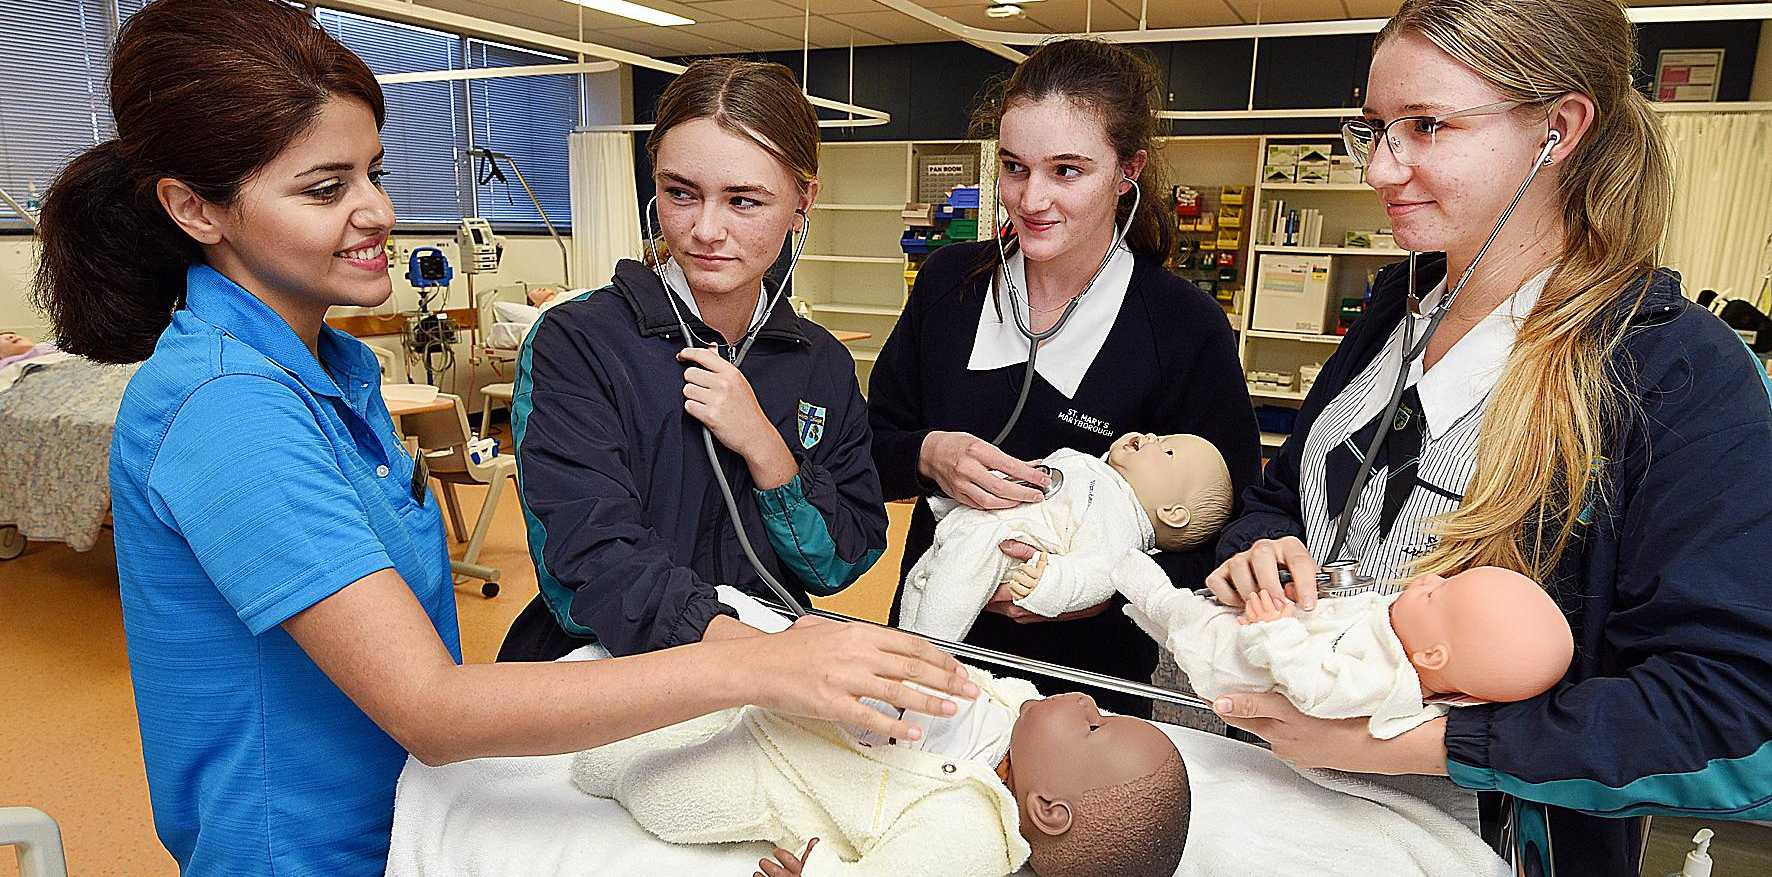 HANDS ON: Second year nursing student Hedi Soleiman with Lily Browning (St. James) , Millie Mushan (St. Marys) and Tara Naeger (St. James).